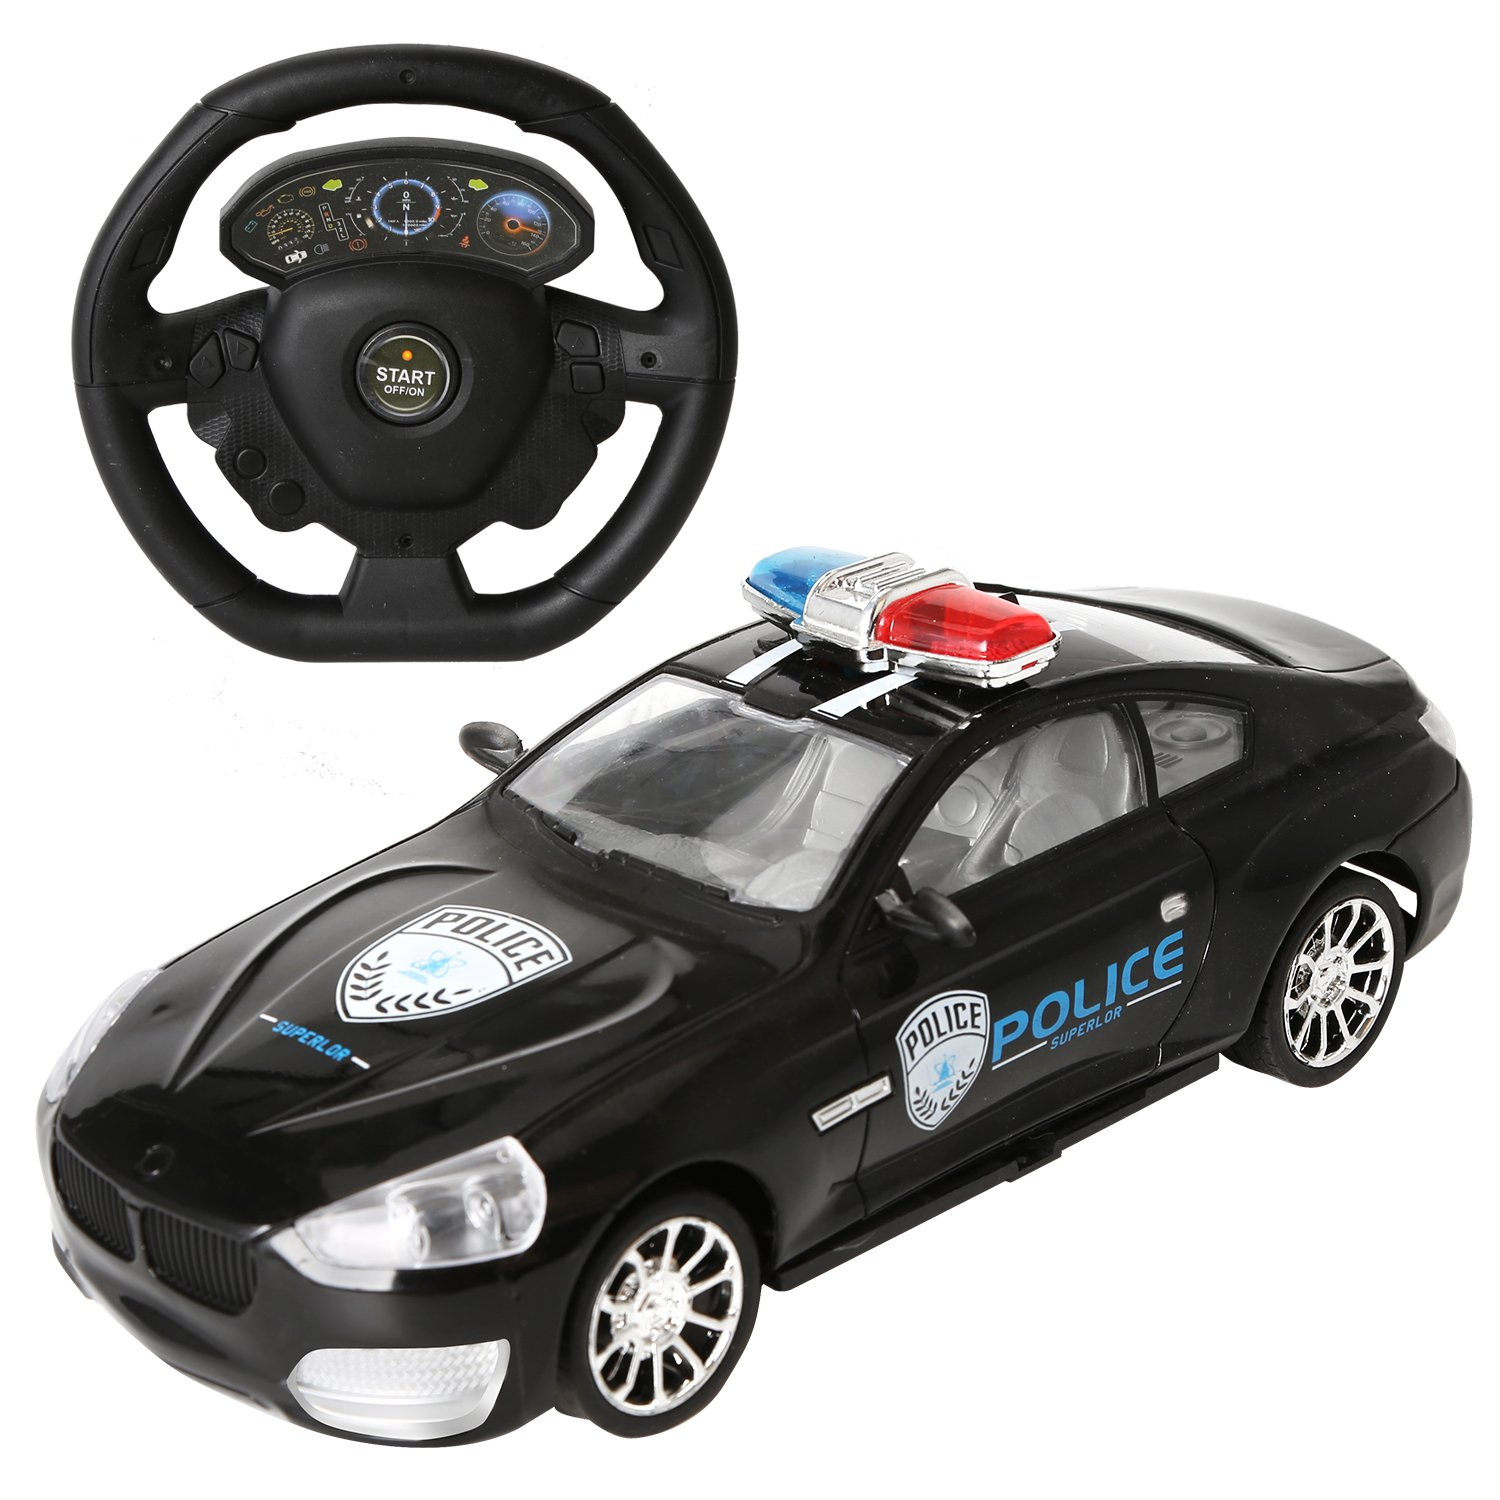 Amazon.com: 1/14 Scale Rechargeable Radio Remote Controlled Car Electric RC Vehicle Police Car Drifting Race Model Car (2.4G Black-P24C): Toys & Games